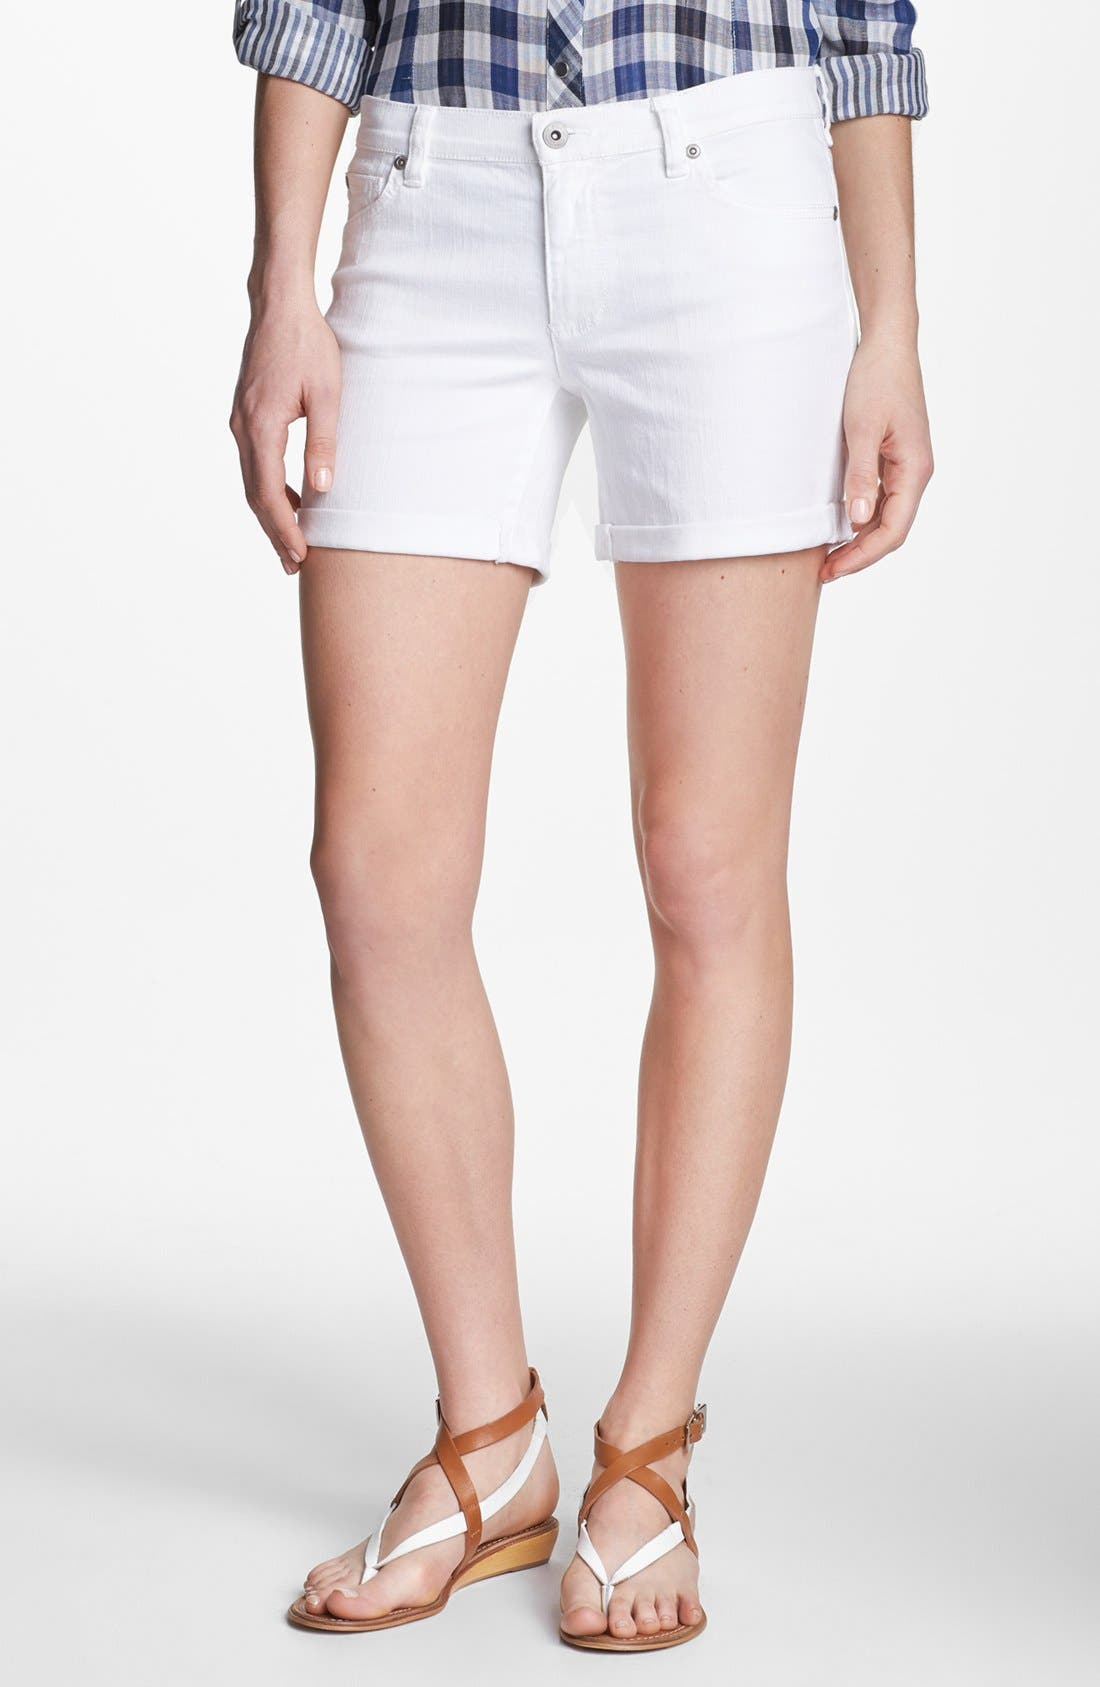 Alternate Image 1 Selected - Two by Vince Camuto Classic Shorts